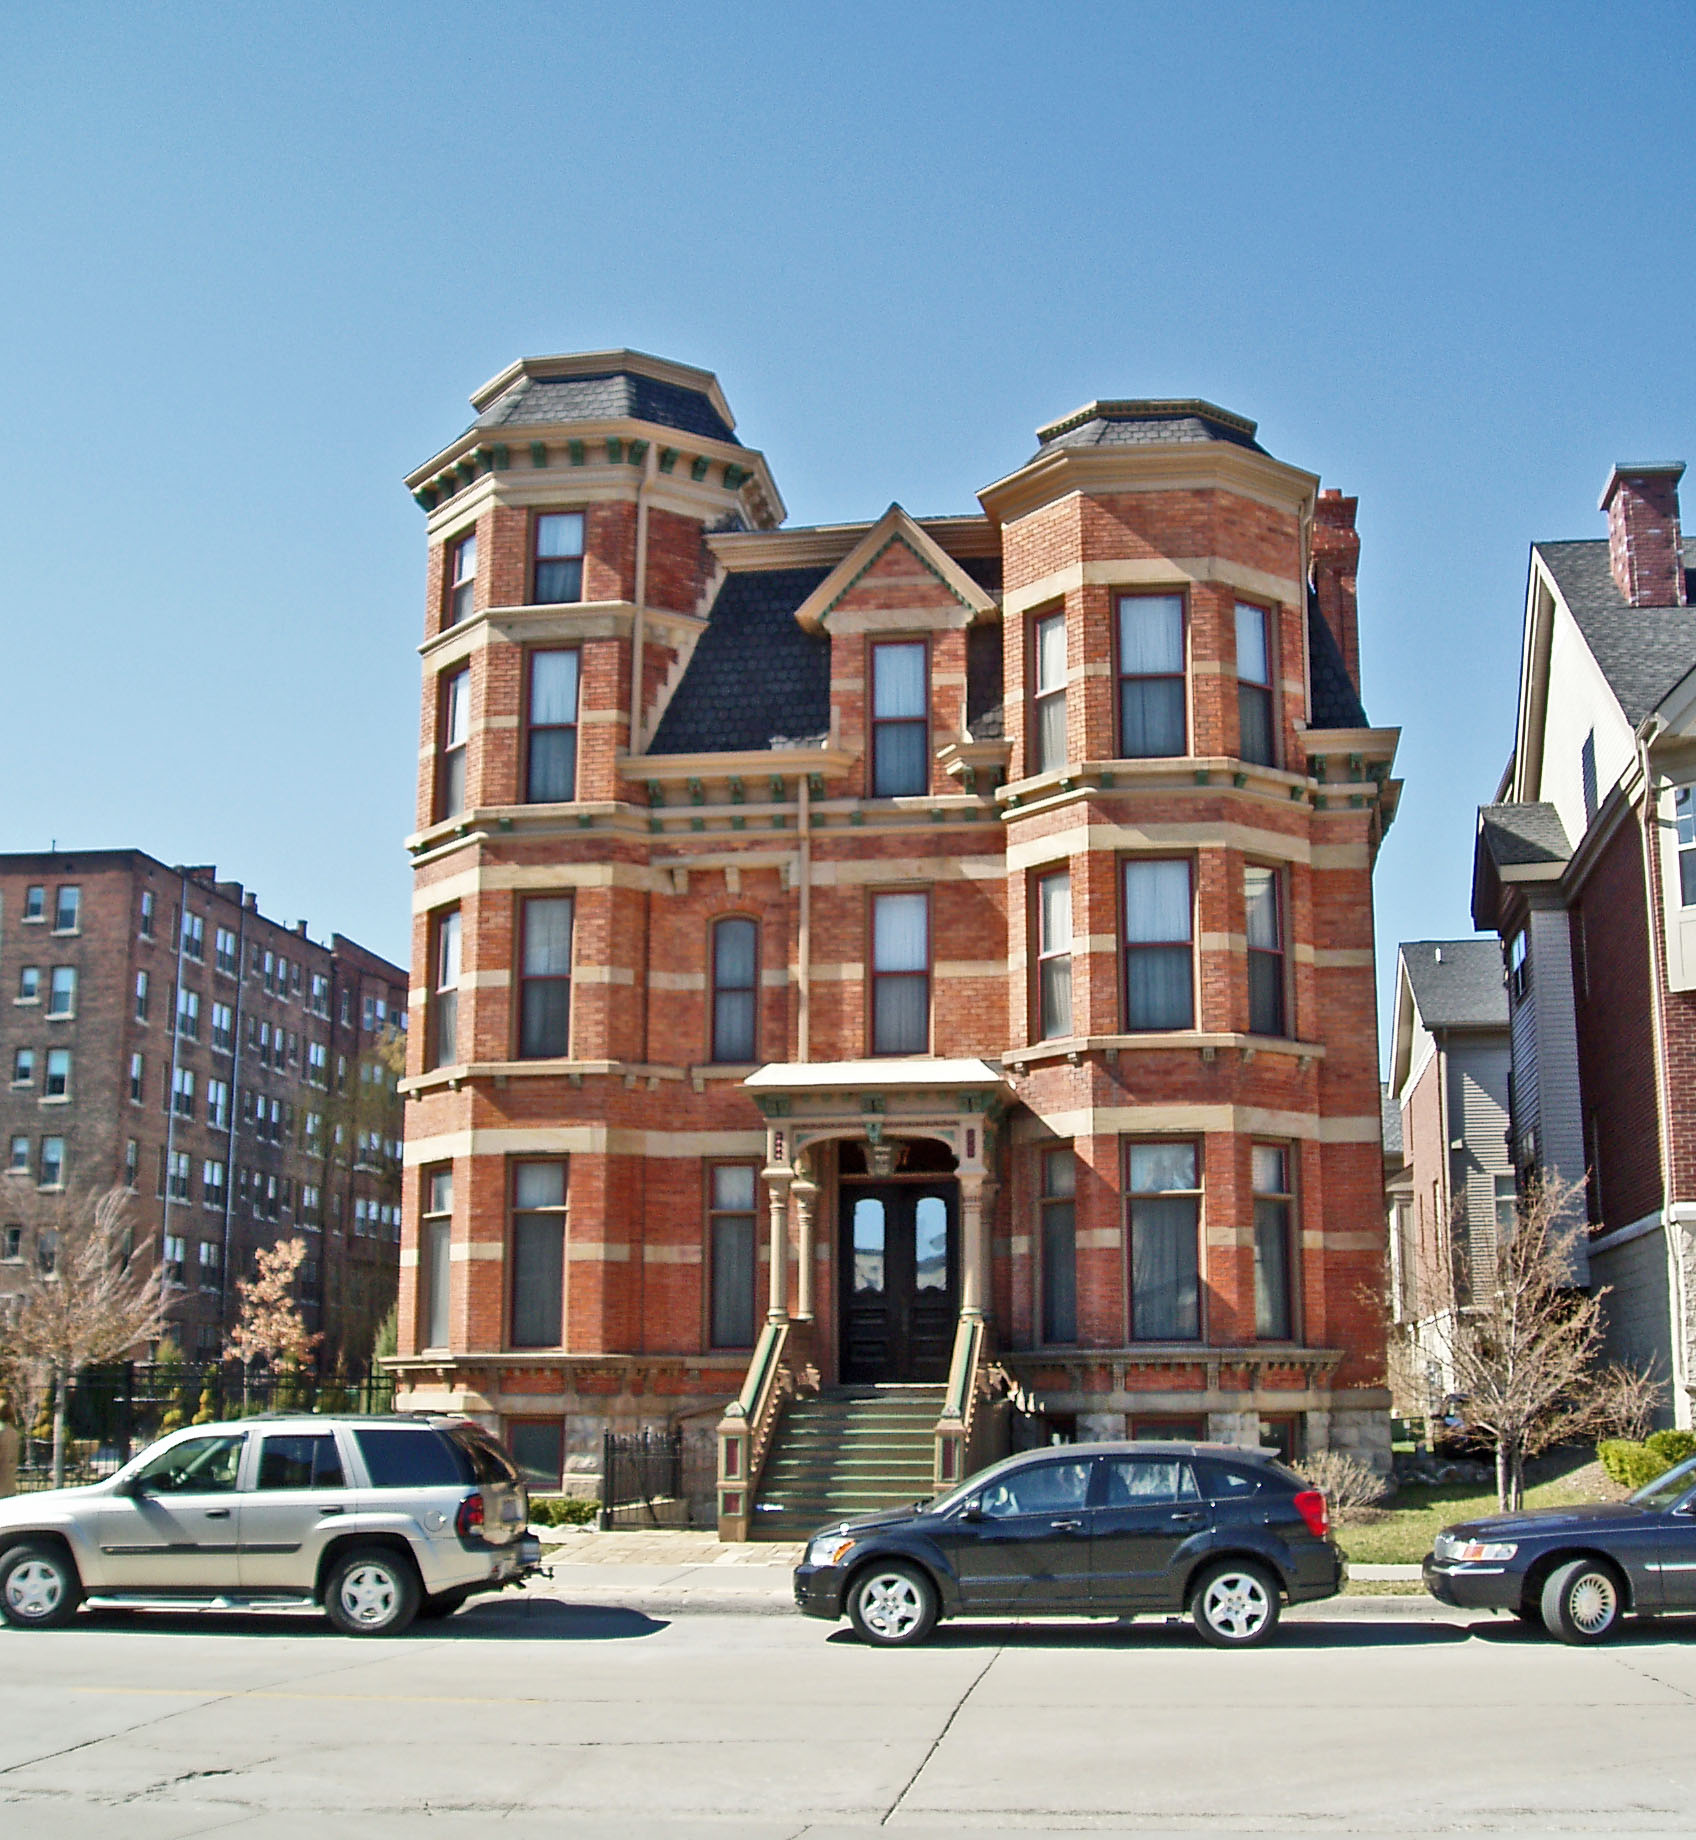 Inn on Winder  Brush Park   Housed in the original John Harvey Mansion, this small 10-room hotel features luxurious bedding, in-room massages, and more. Conveniently located in Brush Park near Comerica Park with convenient access to the QLine.     97 Winder Street 808.503.1443   Website